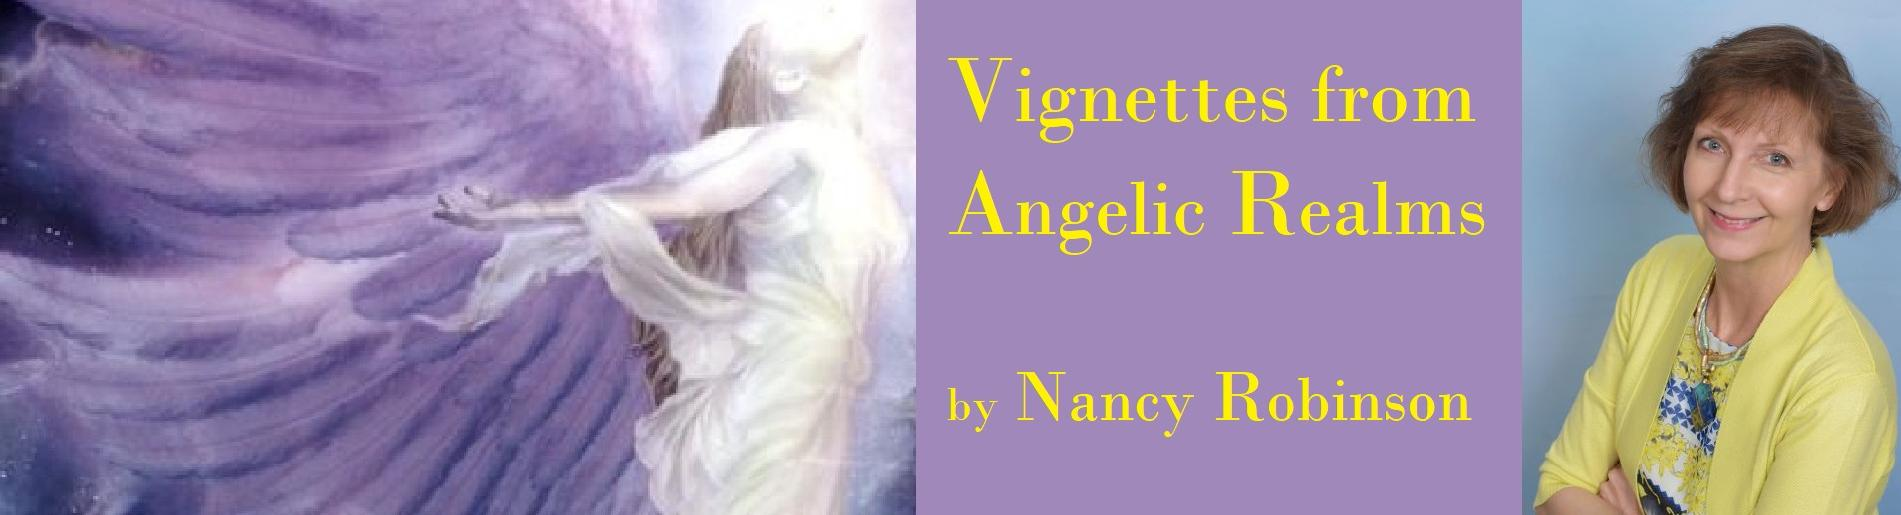 Vignettes from Angelic Realms by Nancy Robinson, Elicor Awakenings, Cosmic Wisdom - HoustonSpirituality.com